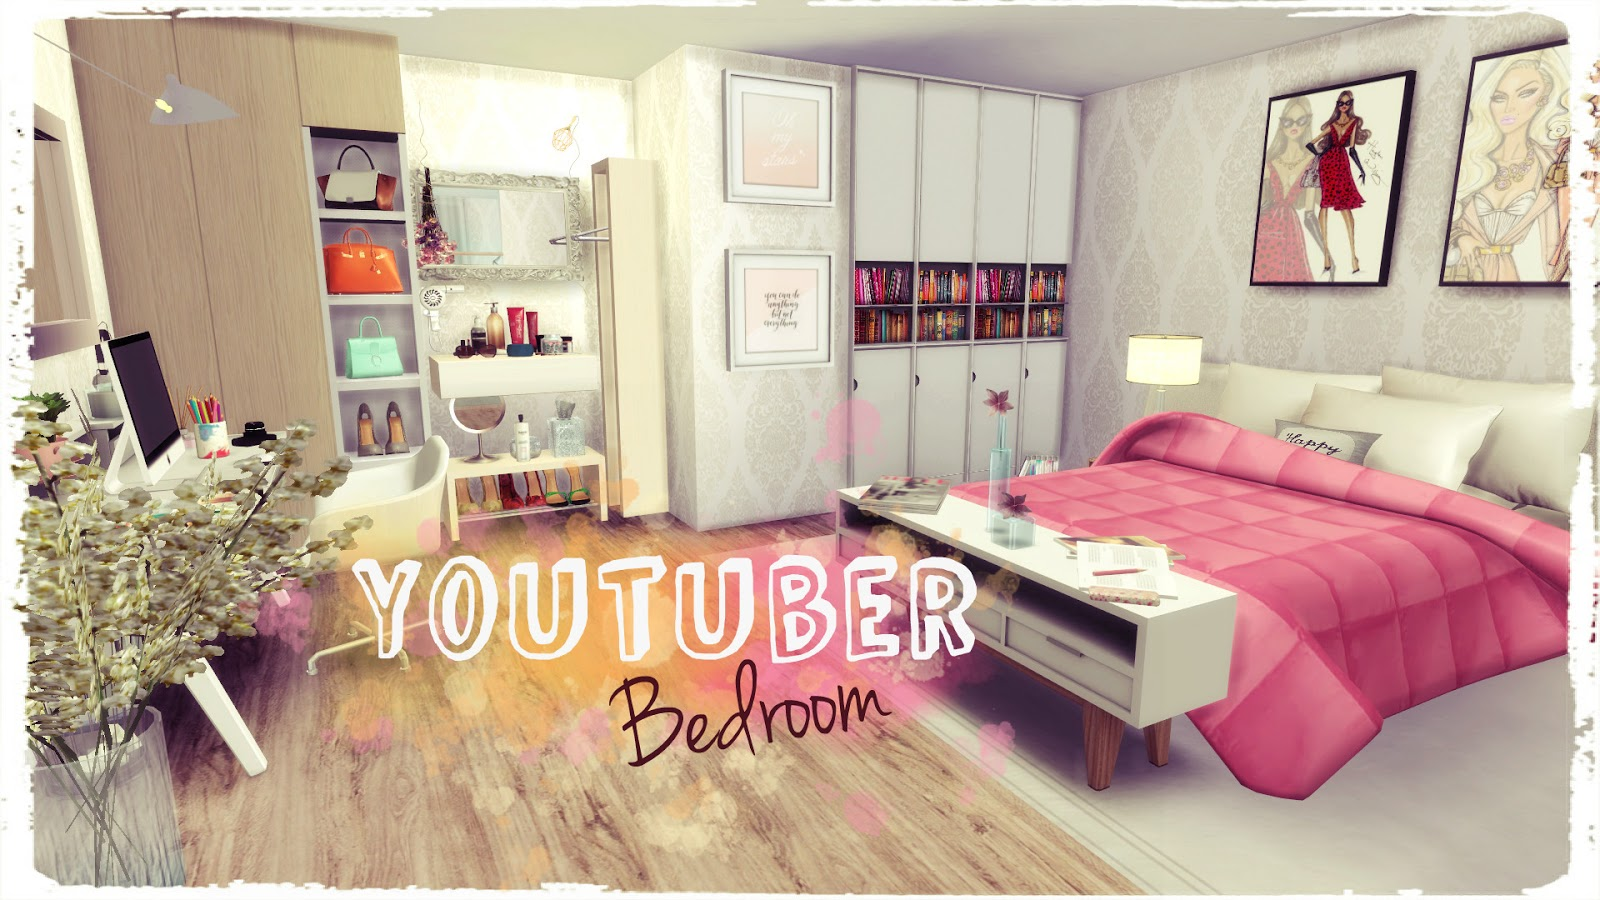 Sims 4 youtuber bedroom dinha for Four bedroom